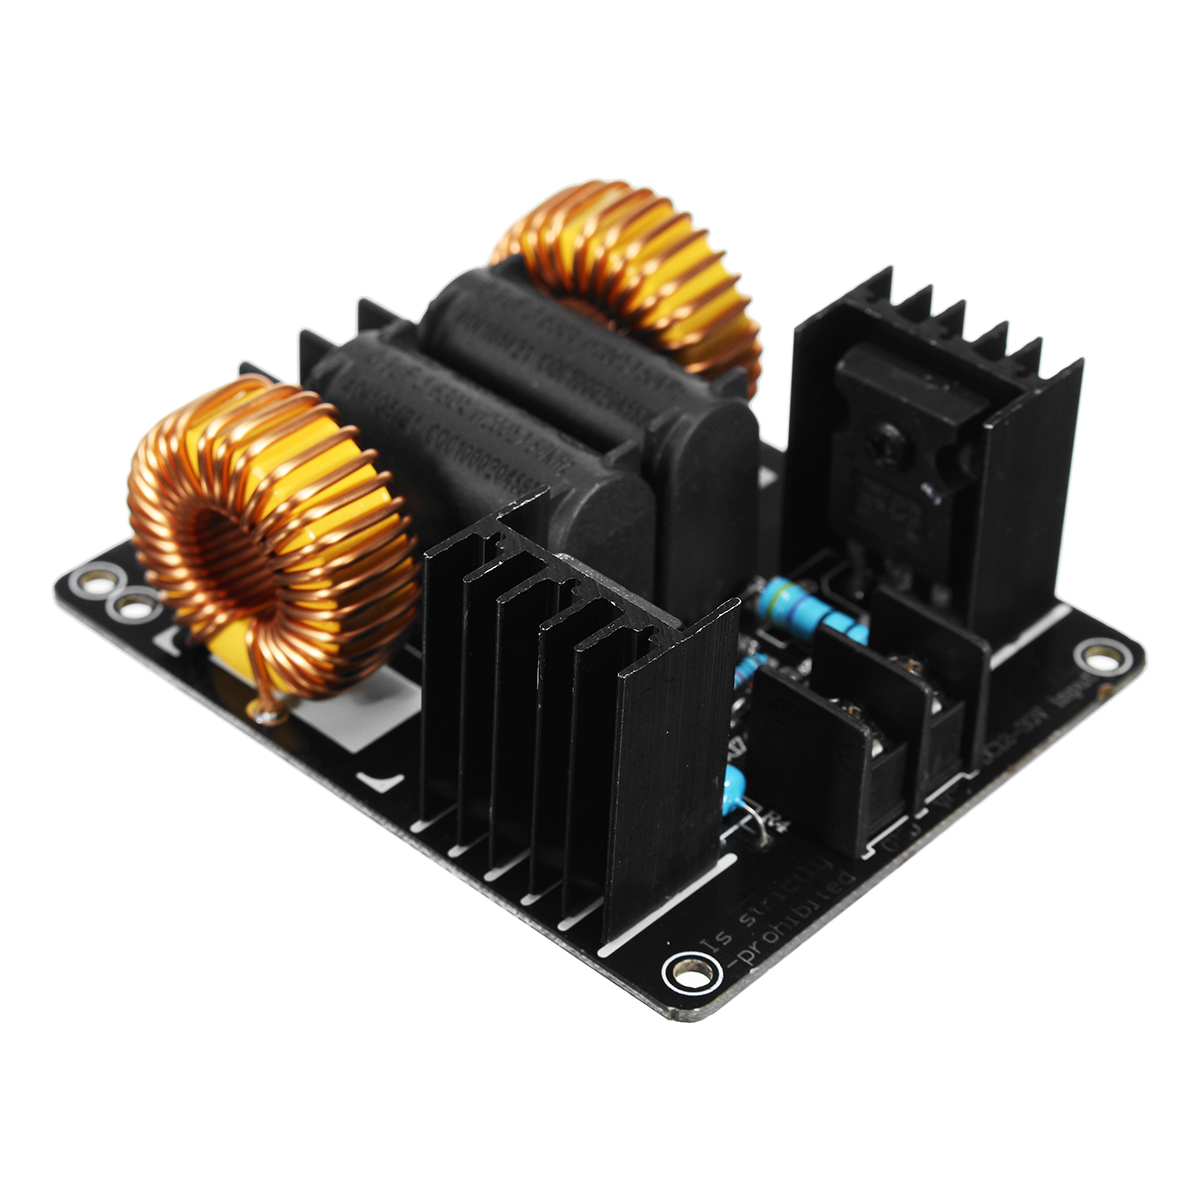 1000w 20a Zvs Low Voltage Induction Heating Module Board Flyback Heater Circuits 425f1724 2ee0 40a4 8720 46109fc94091